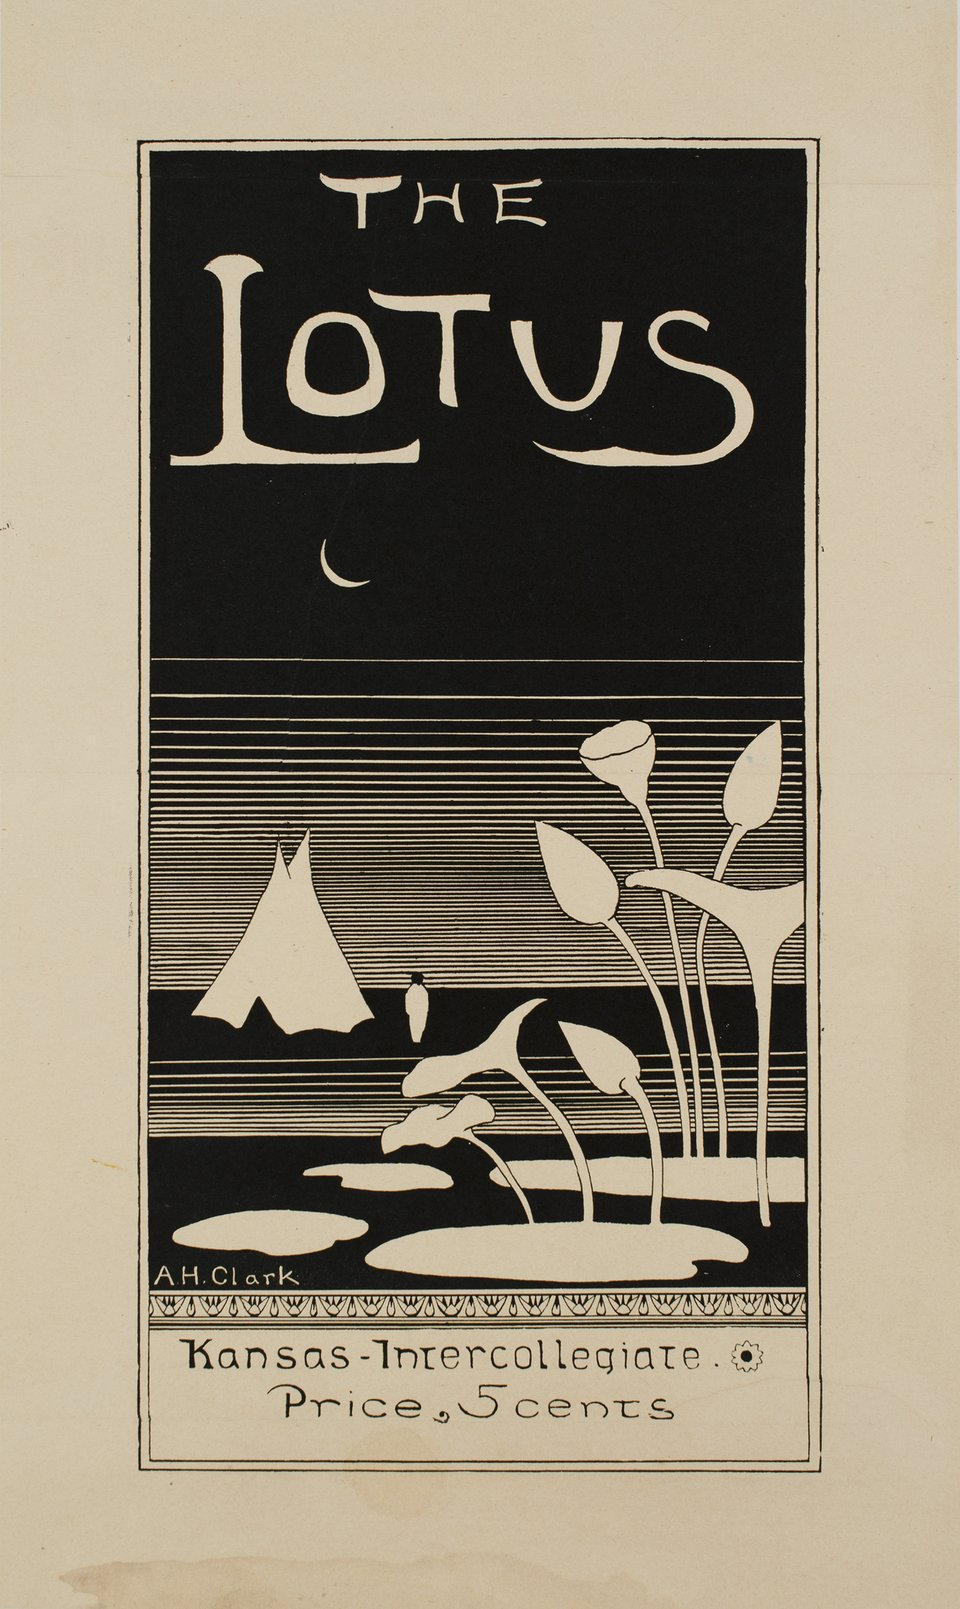 The Lotus, Kansas Intercollegiate – Vintage poster – A.H. CLARK – 1900